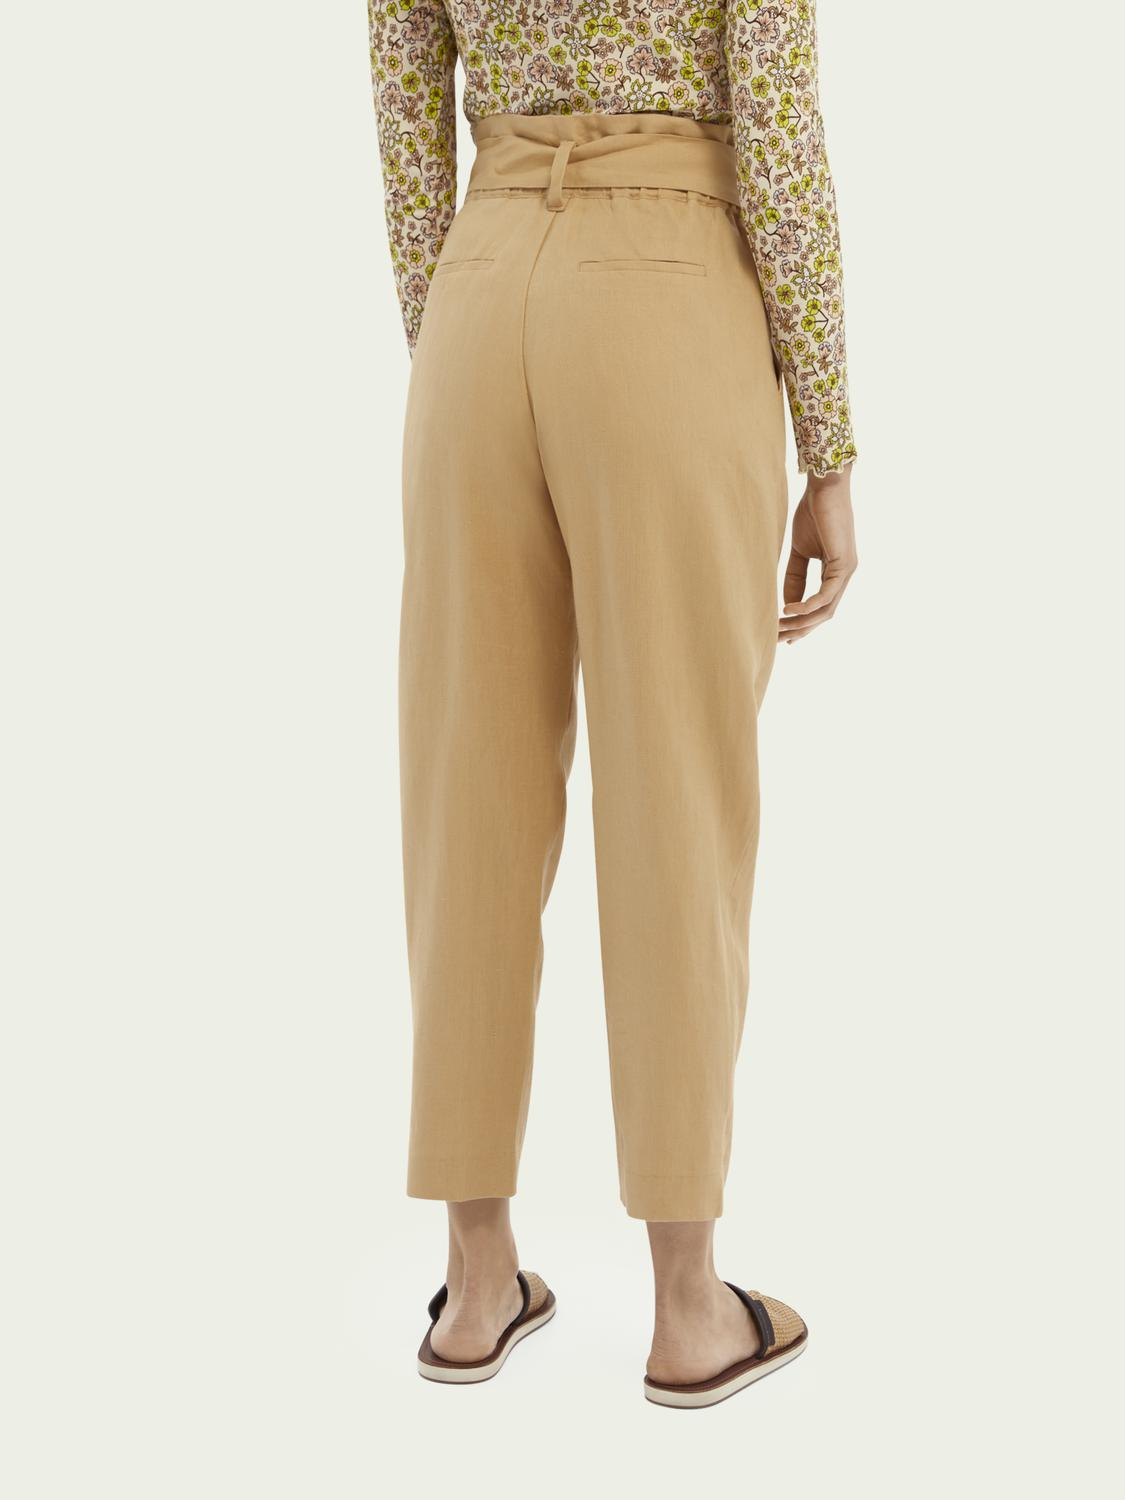 Paperbag trousers 2